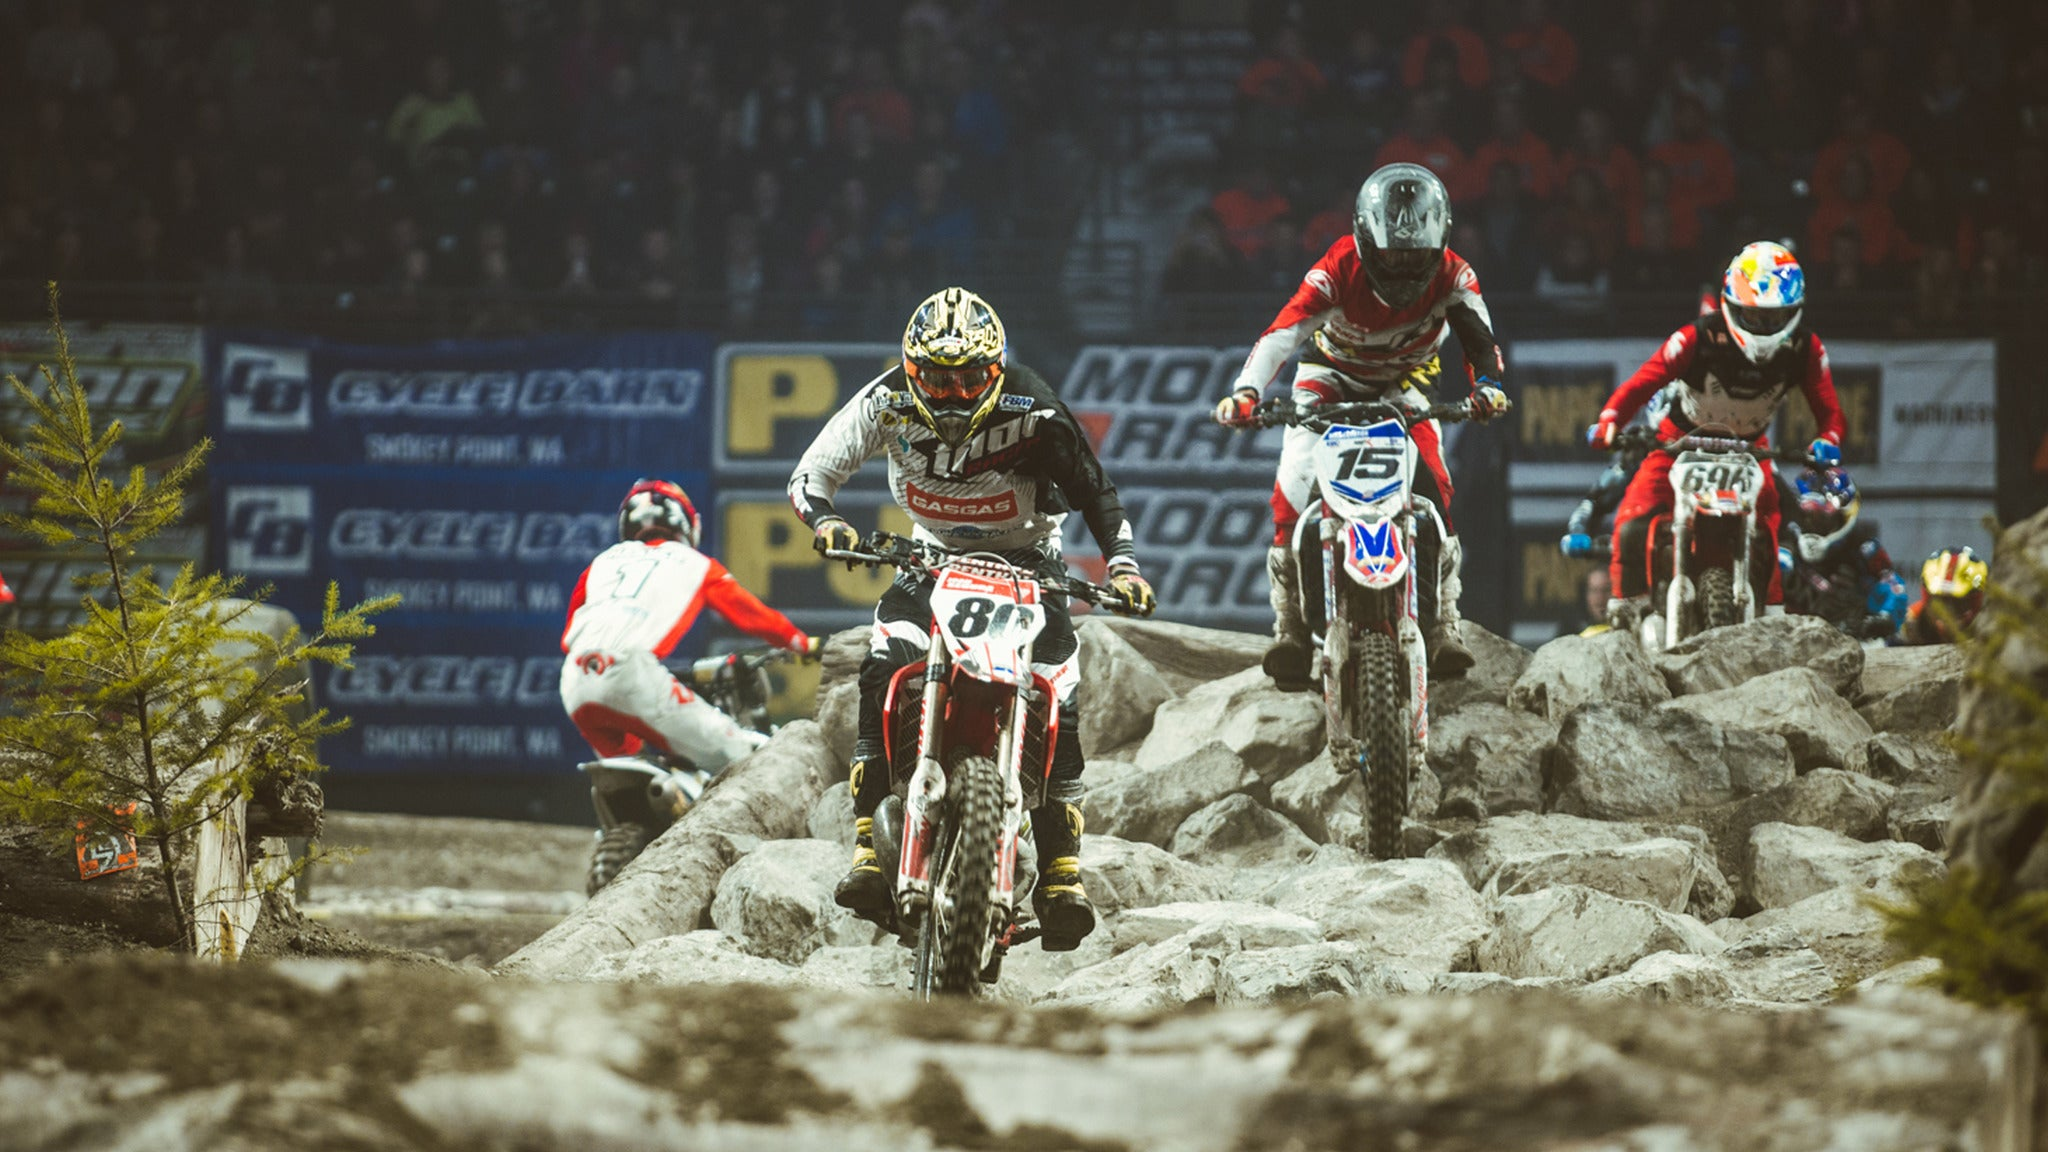 Endurocross at Prescott Valley Event Center